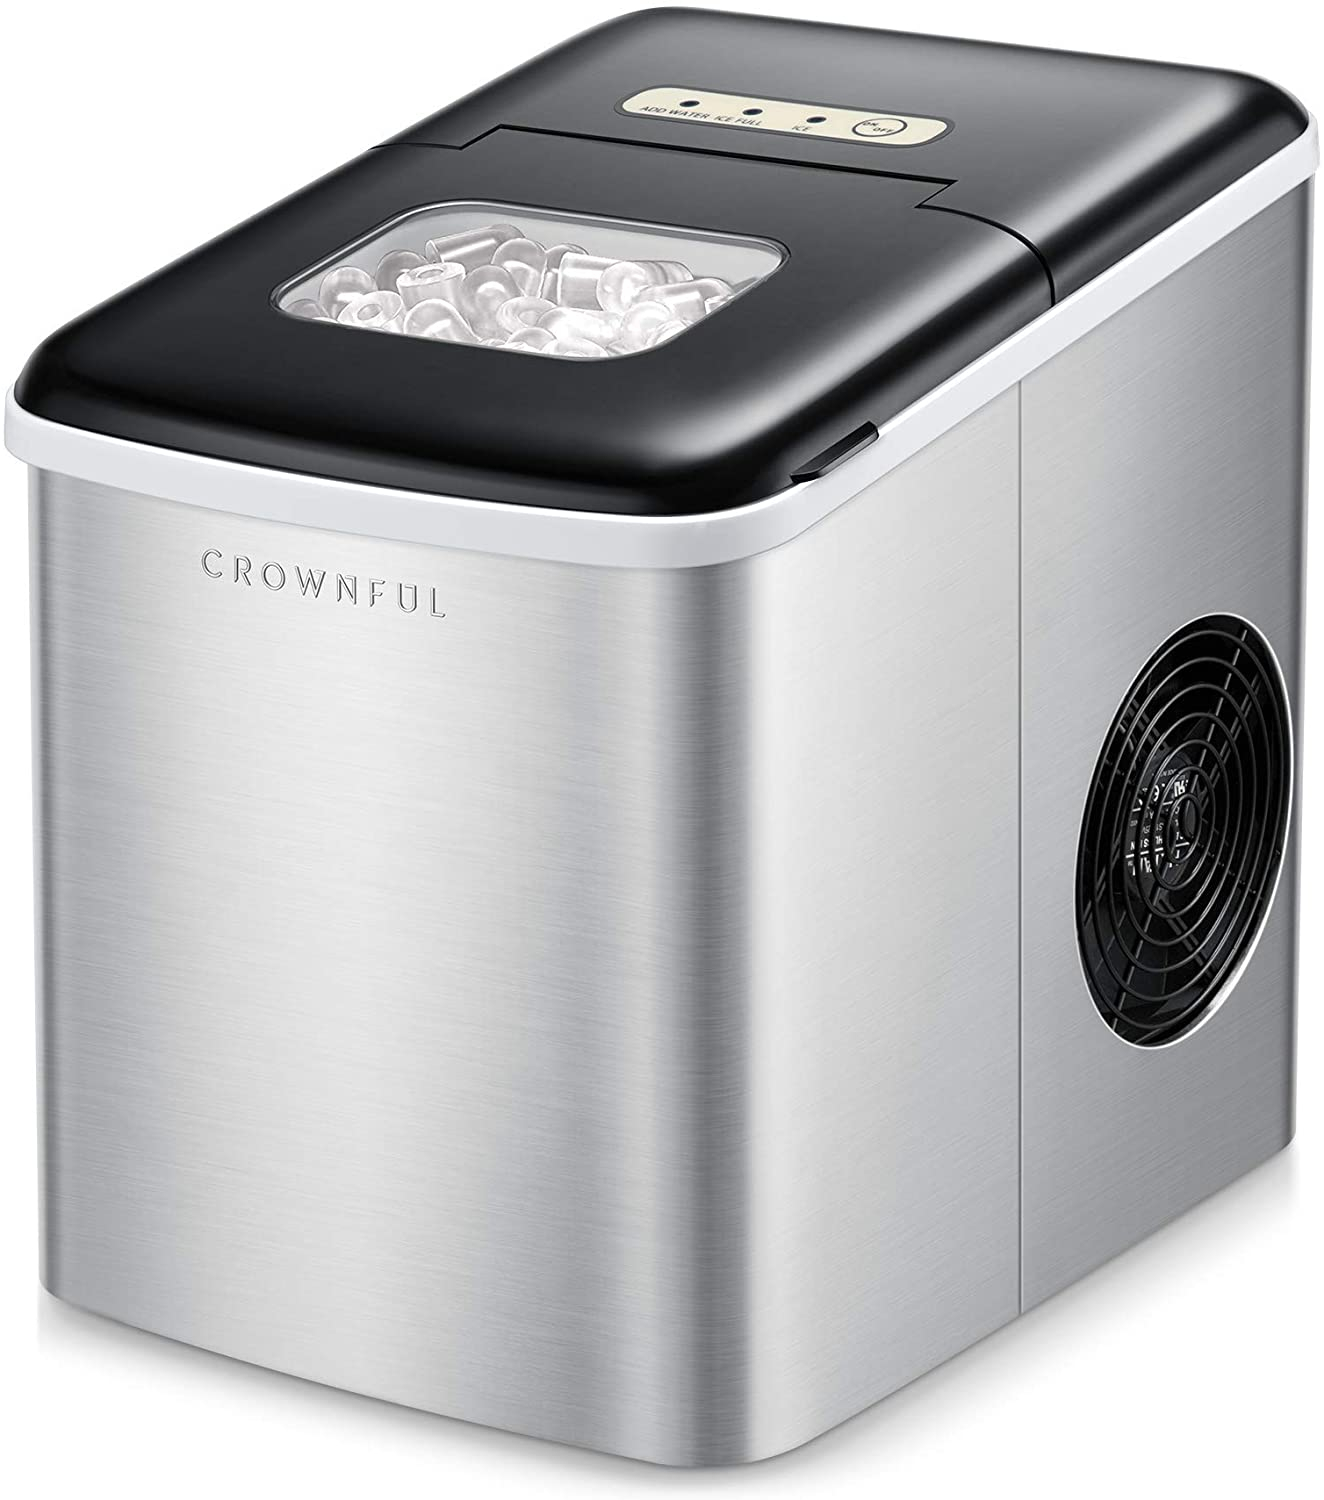 Crownful Ice Maker Machine for Countertop